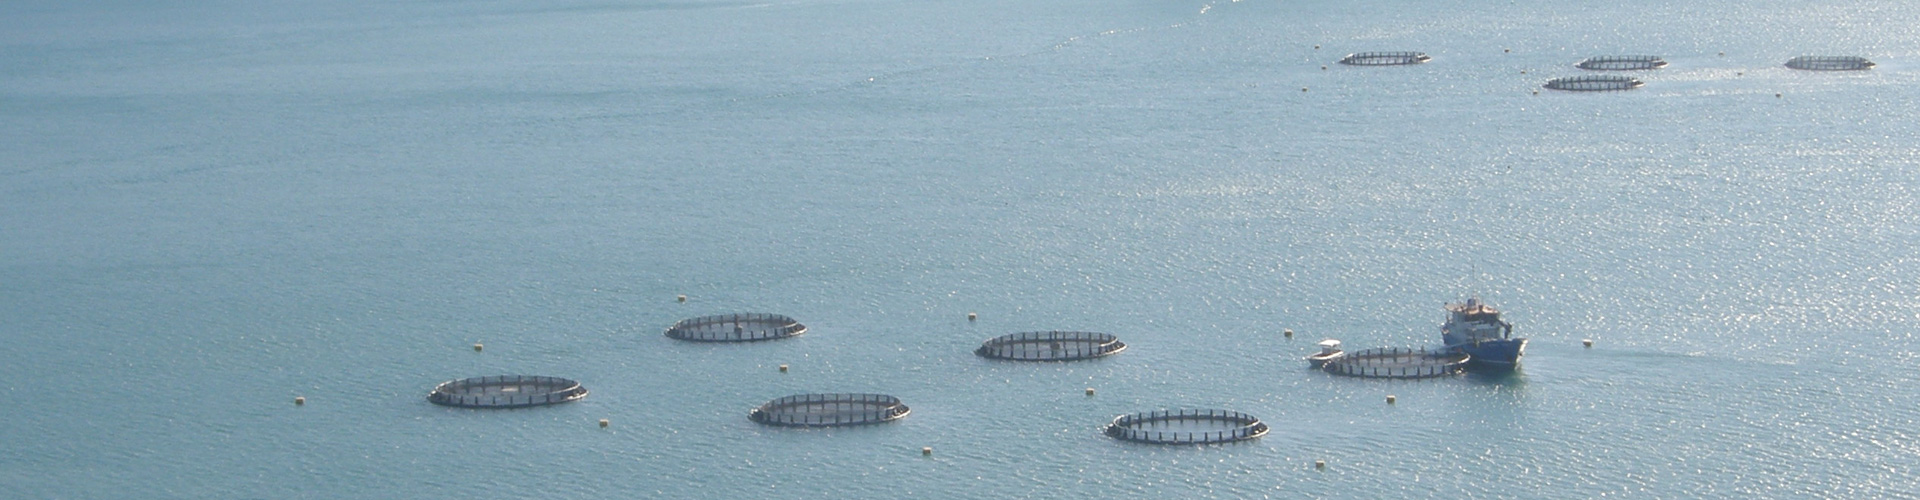 Cone Bay Barramundi Farm